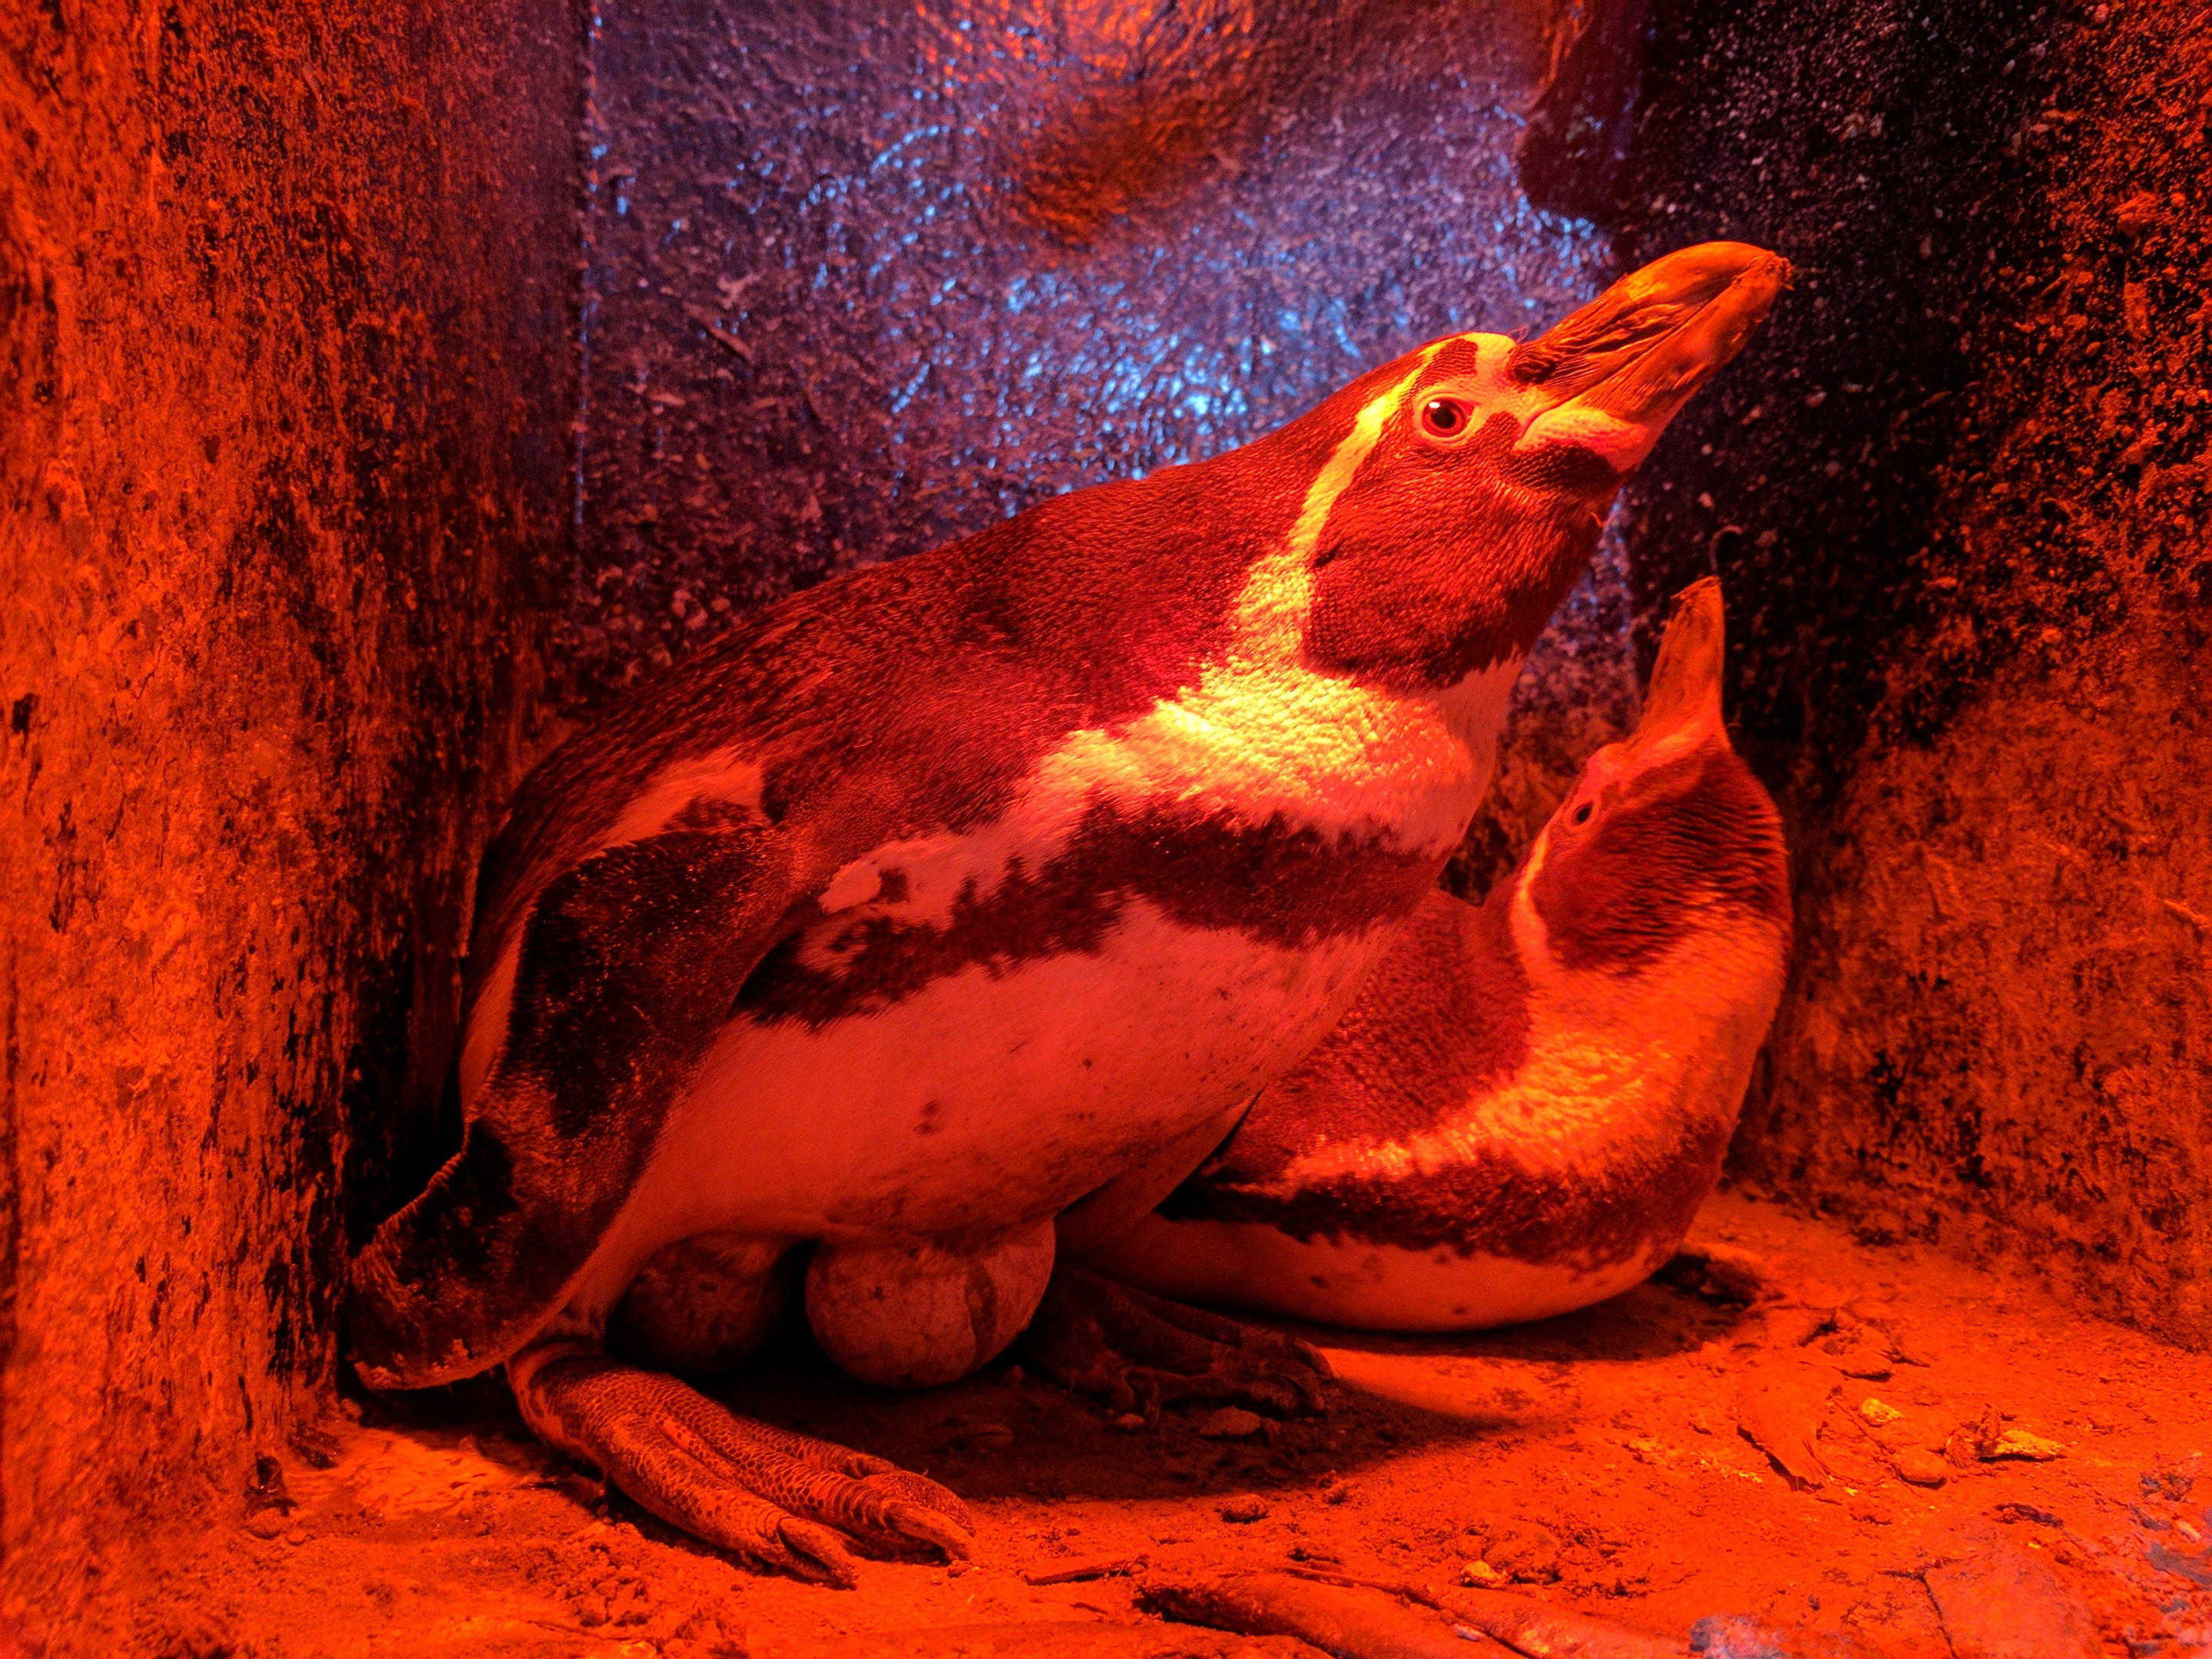 Humboldt penguins at St Andrews Aquarium keep their eggs warm with the hope of Easter holiday hatchlings.